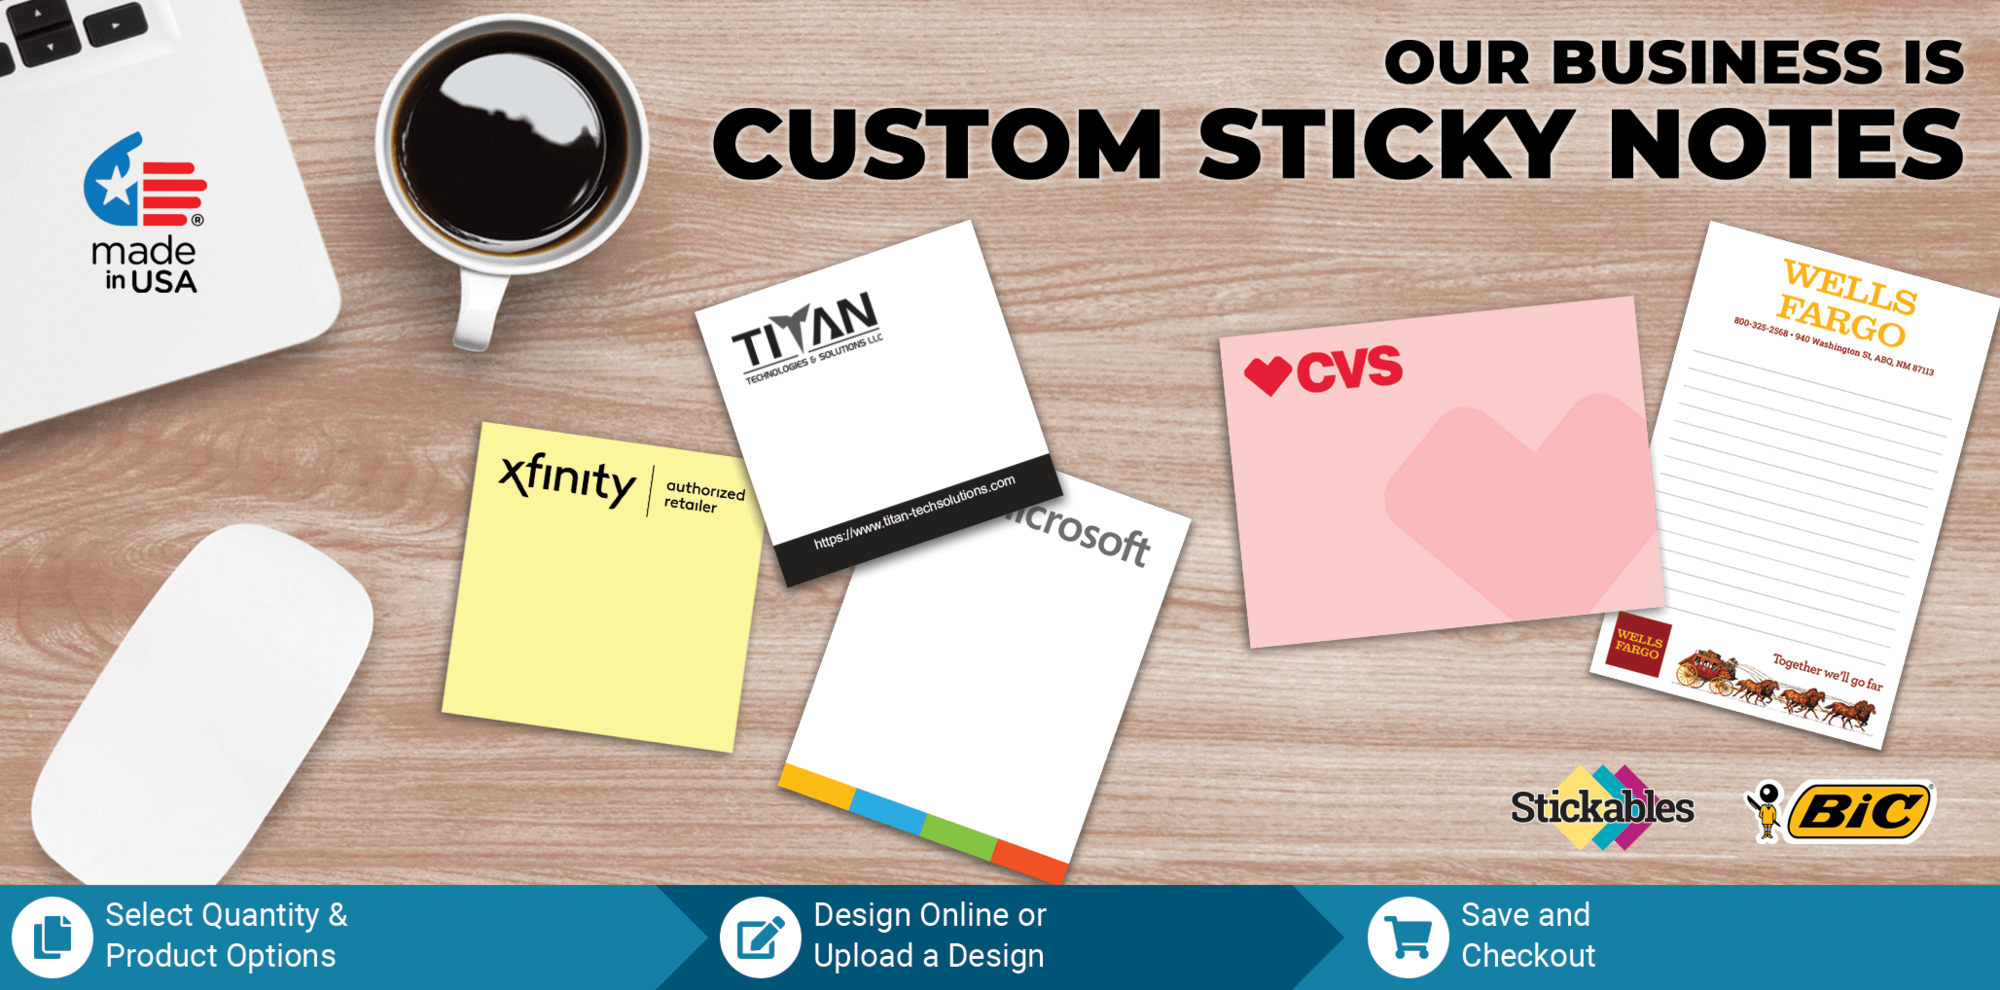 https://printpps.com/images/products_gallery_images/Custom-Sticky-Notes_Product-Page-Banner63.png